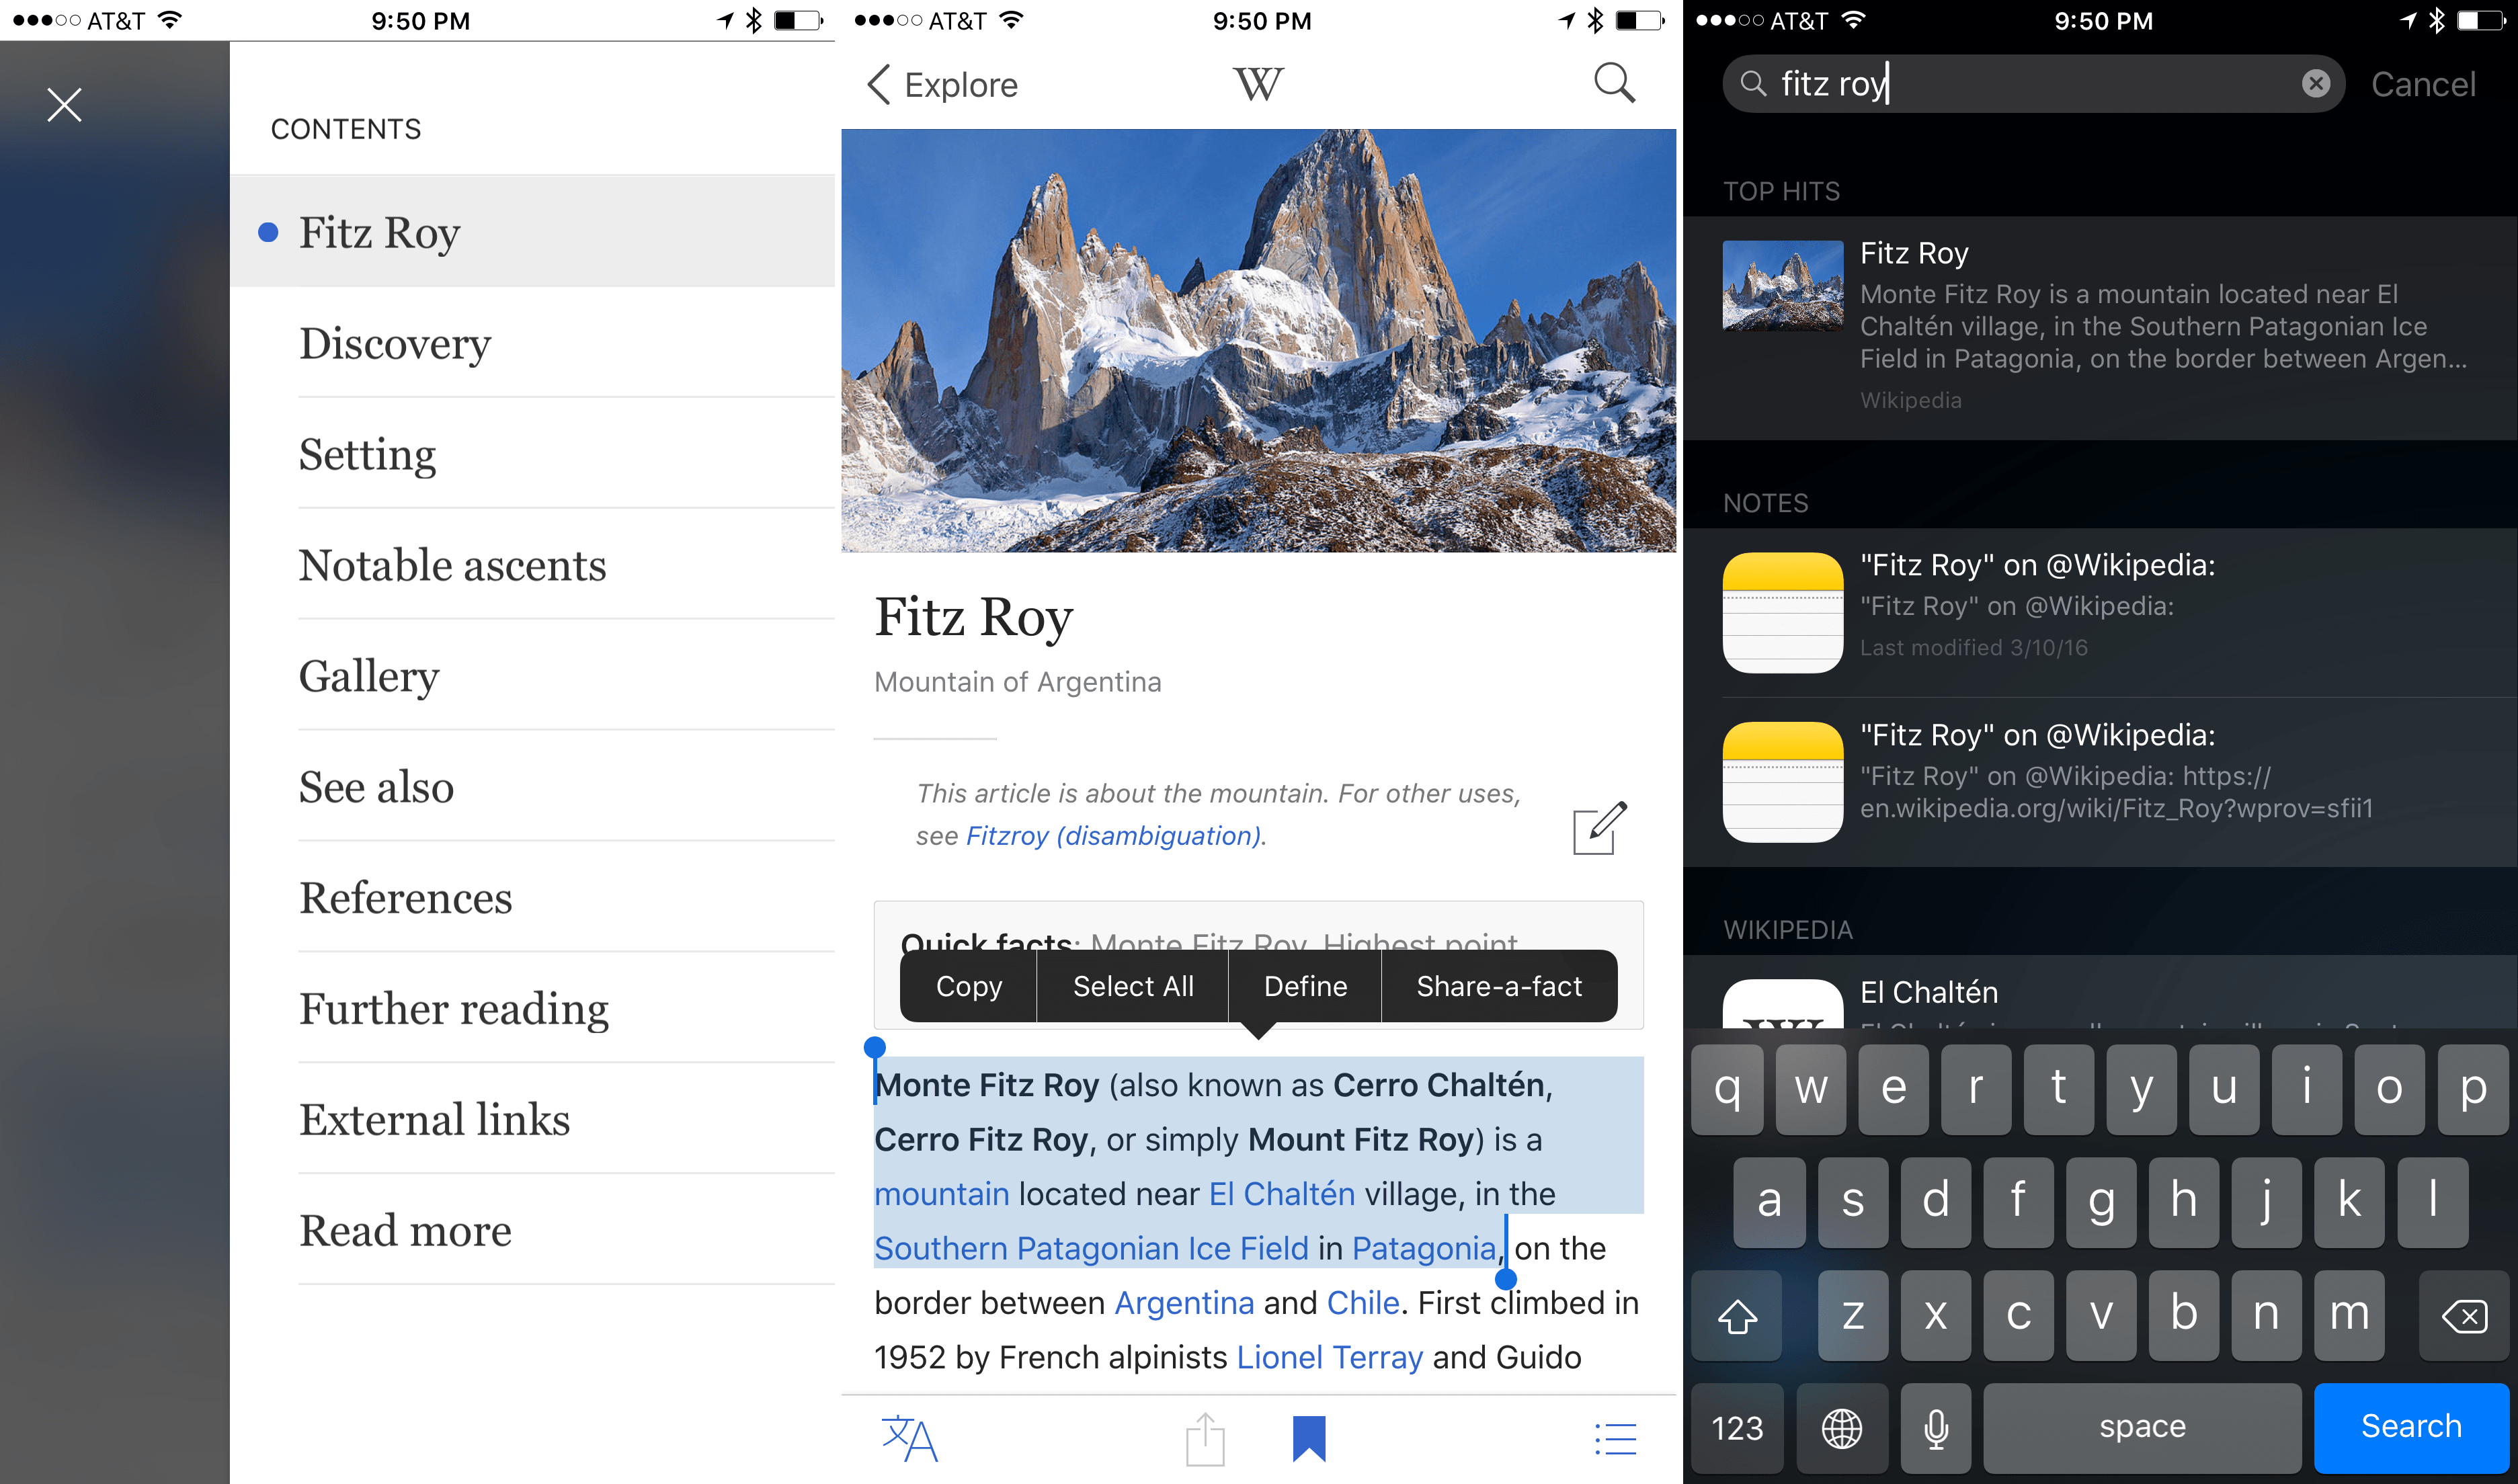 Article navigation, share-a-fact, and Spotlight search.